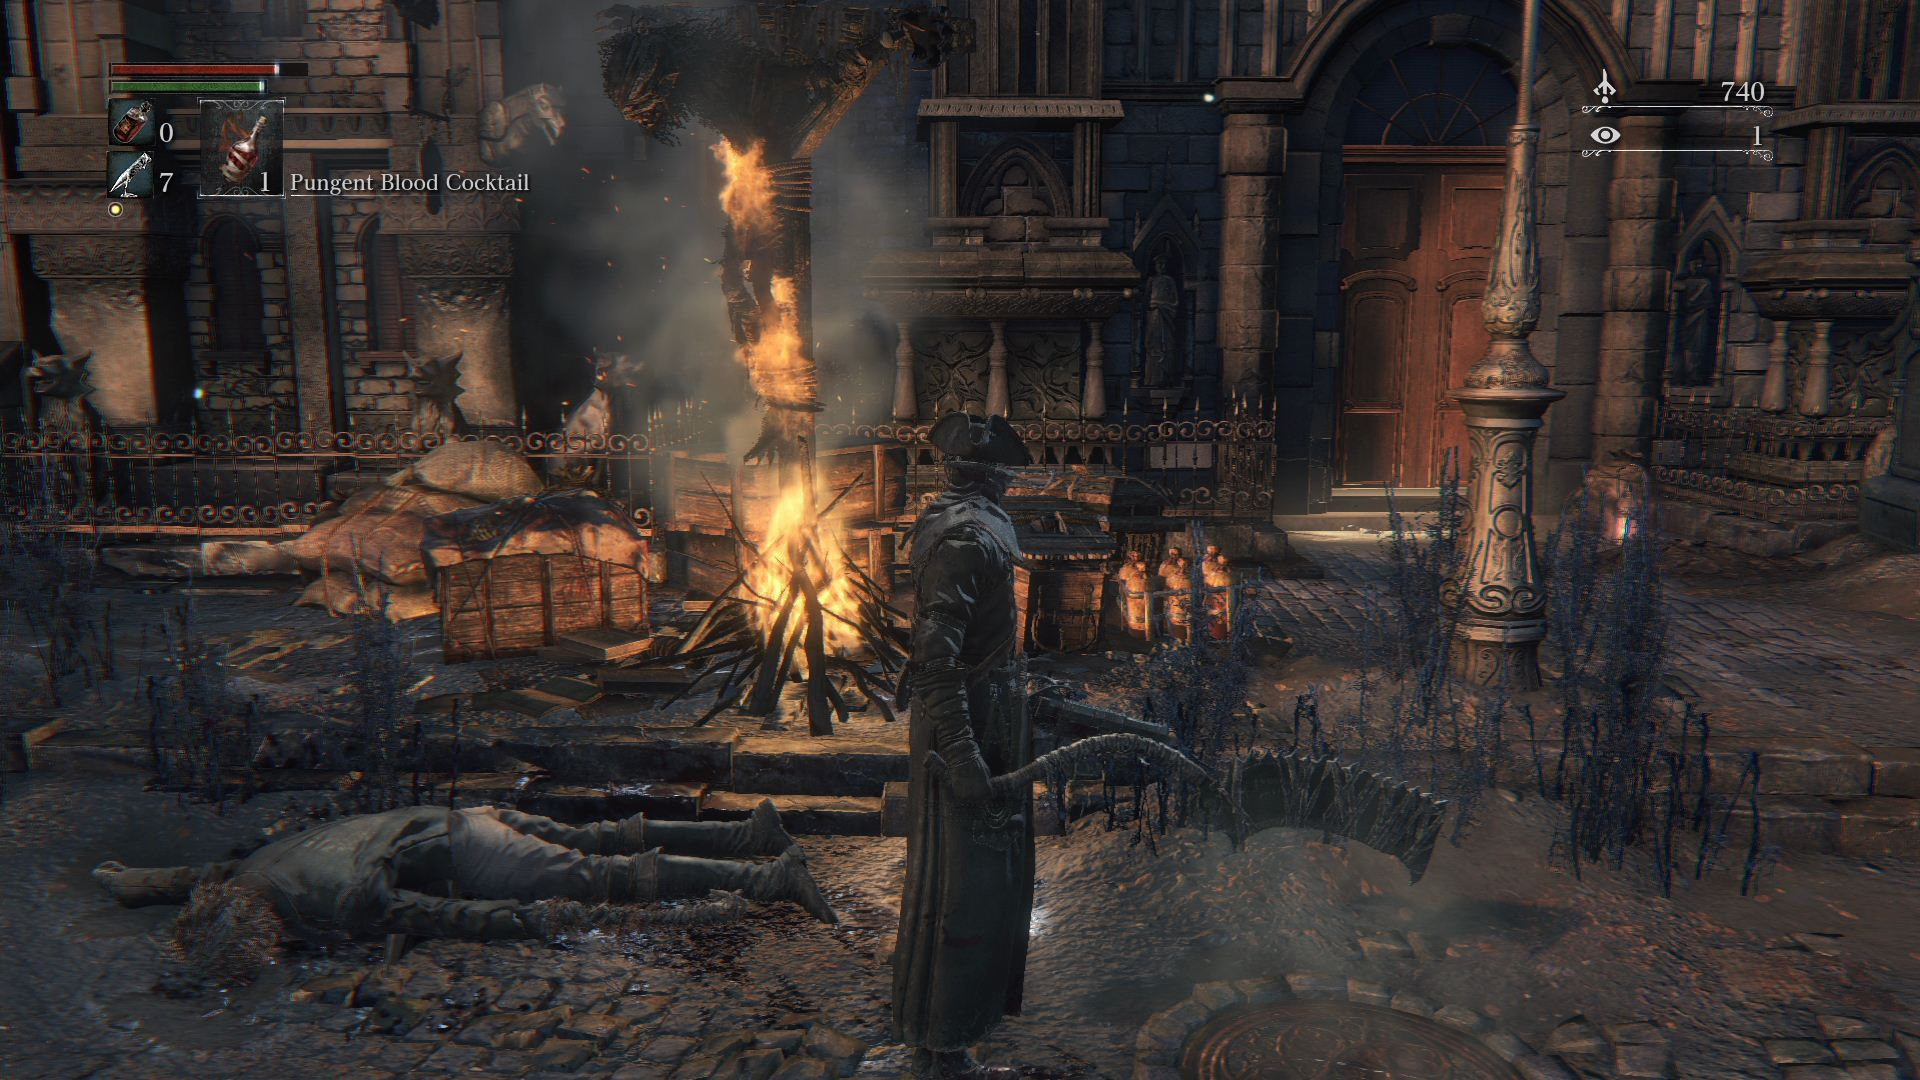 PS4 BLOODBORNE 11